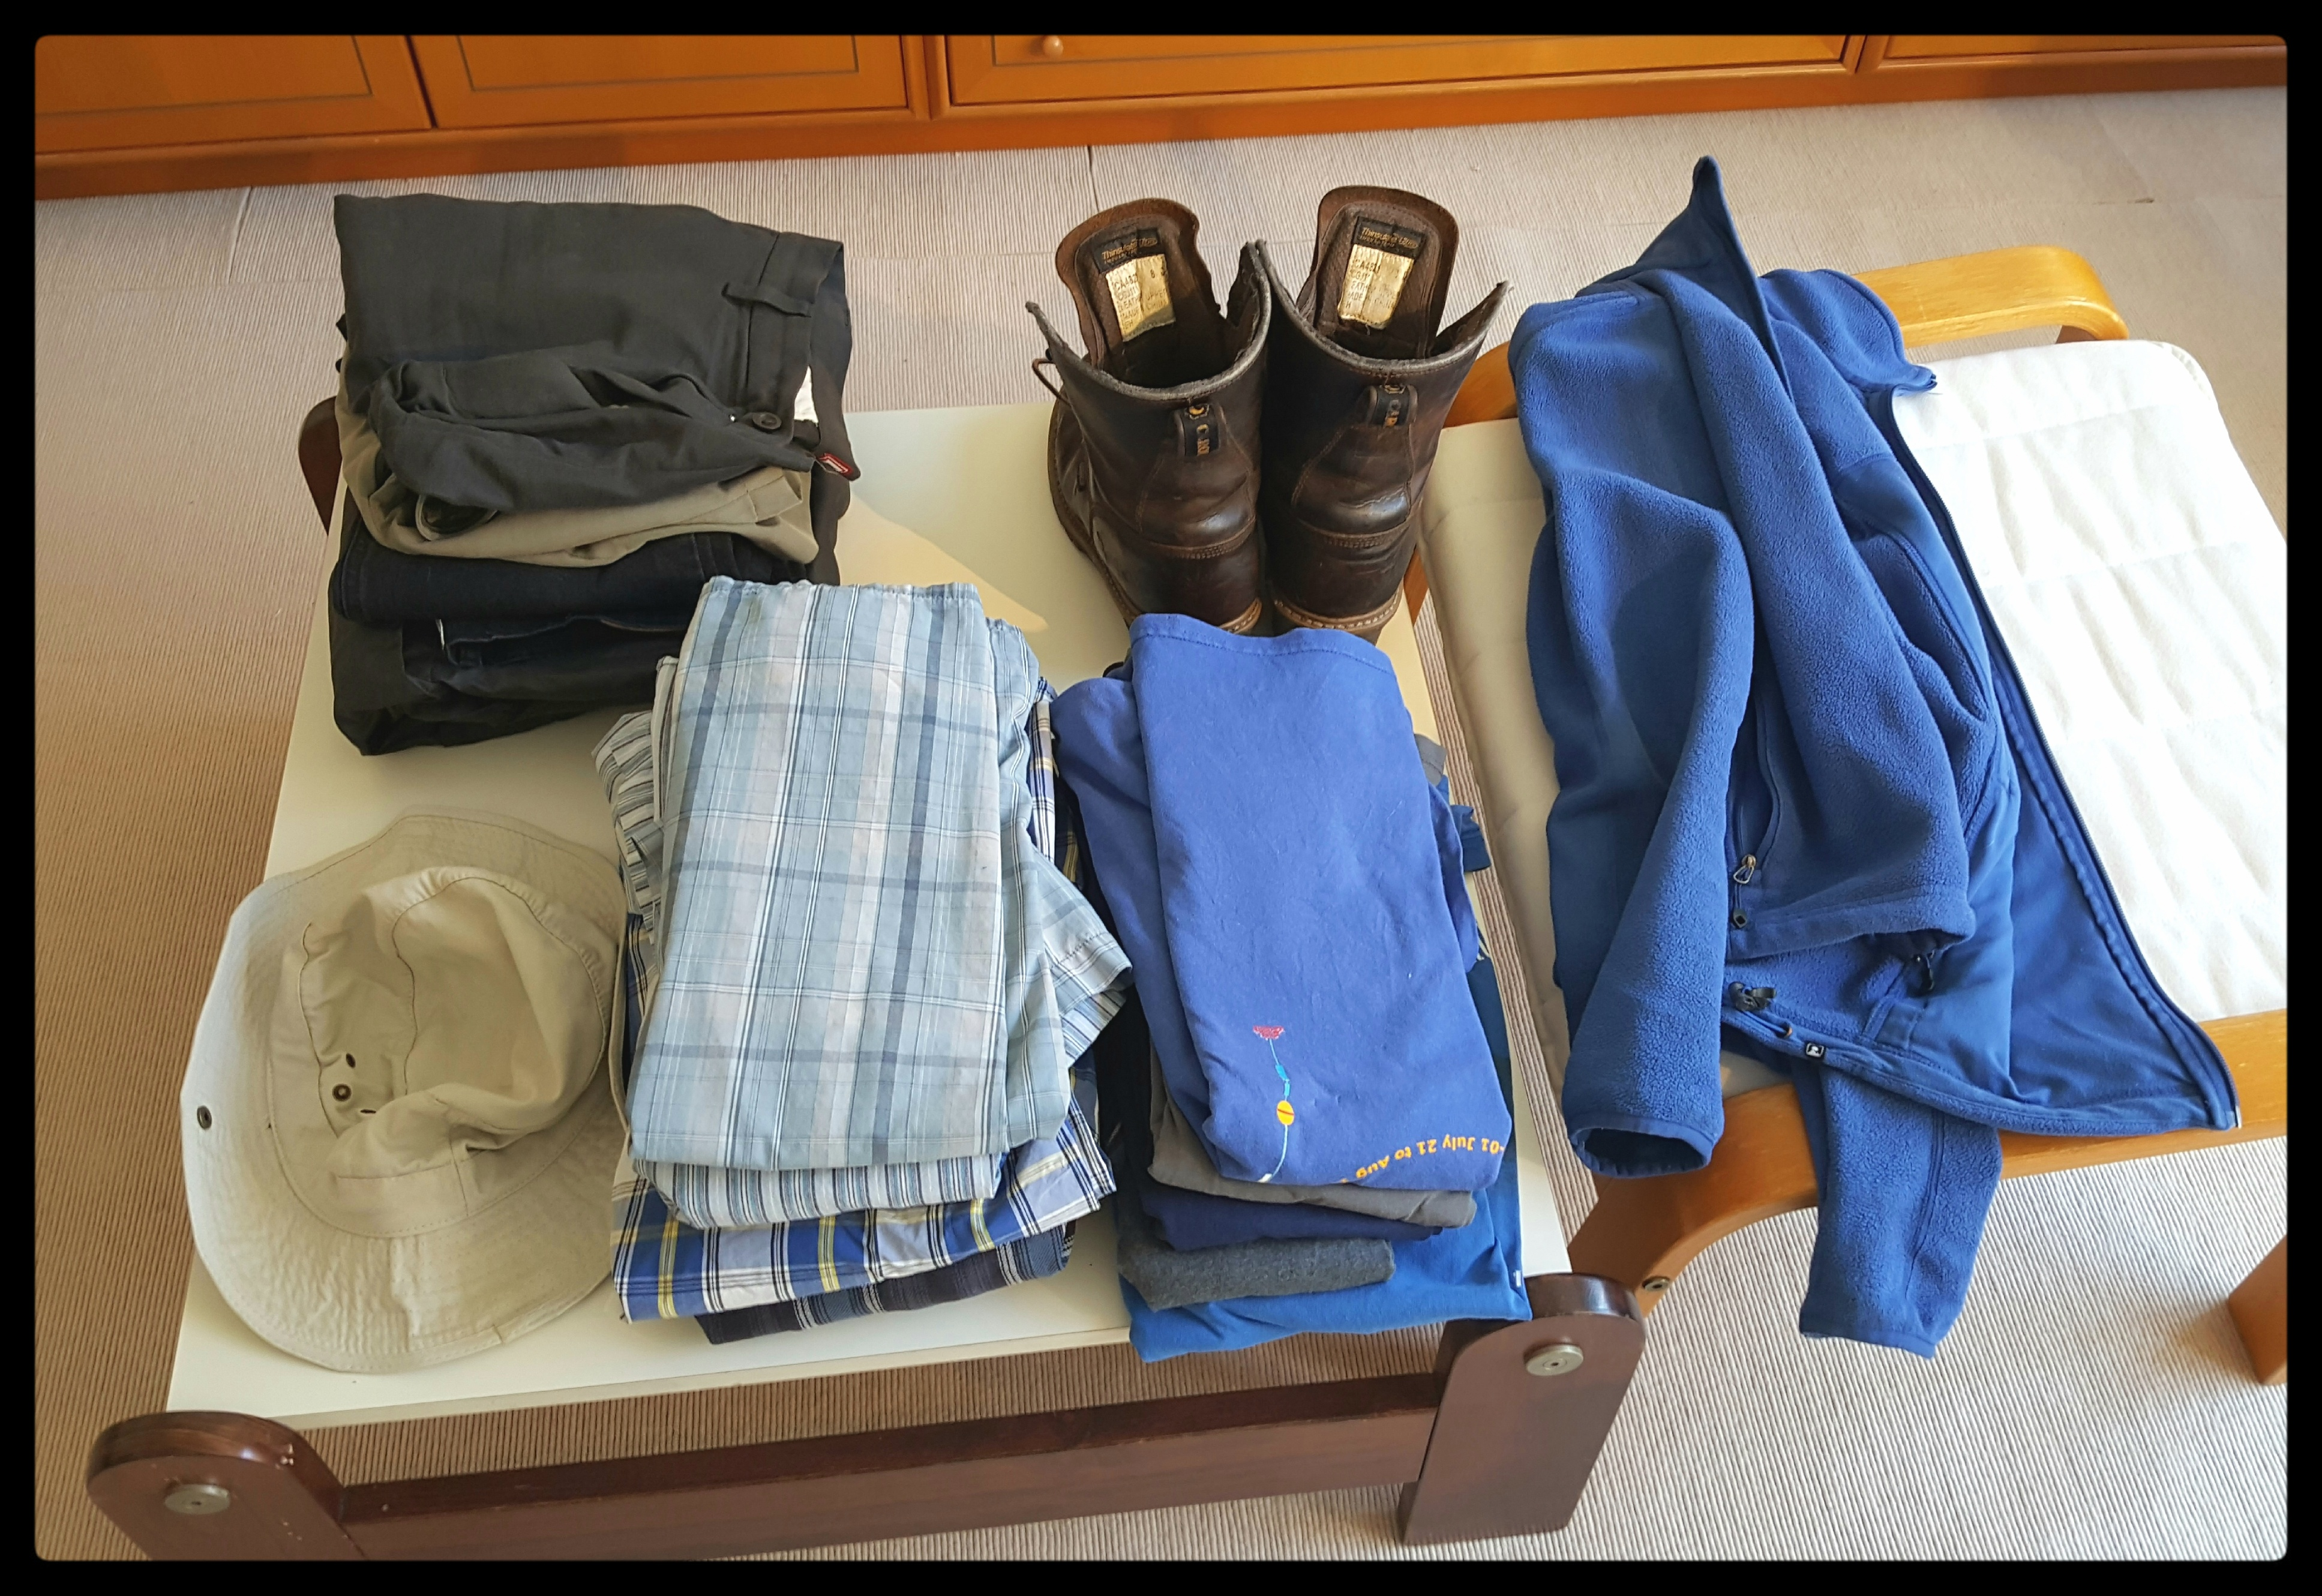 The clothes that Andreas has needed and worn this year minus 1 pair of pants, 1 t-shirt, a fleece jacket and a windbreaker. (Things that he wore to work today) Photo by Dragonfly Leathrum